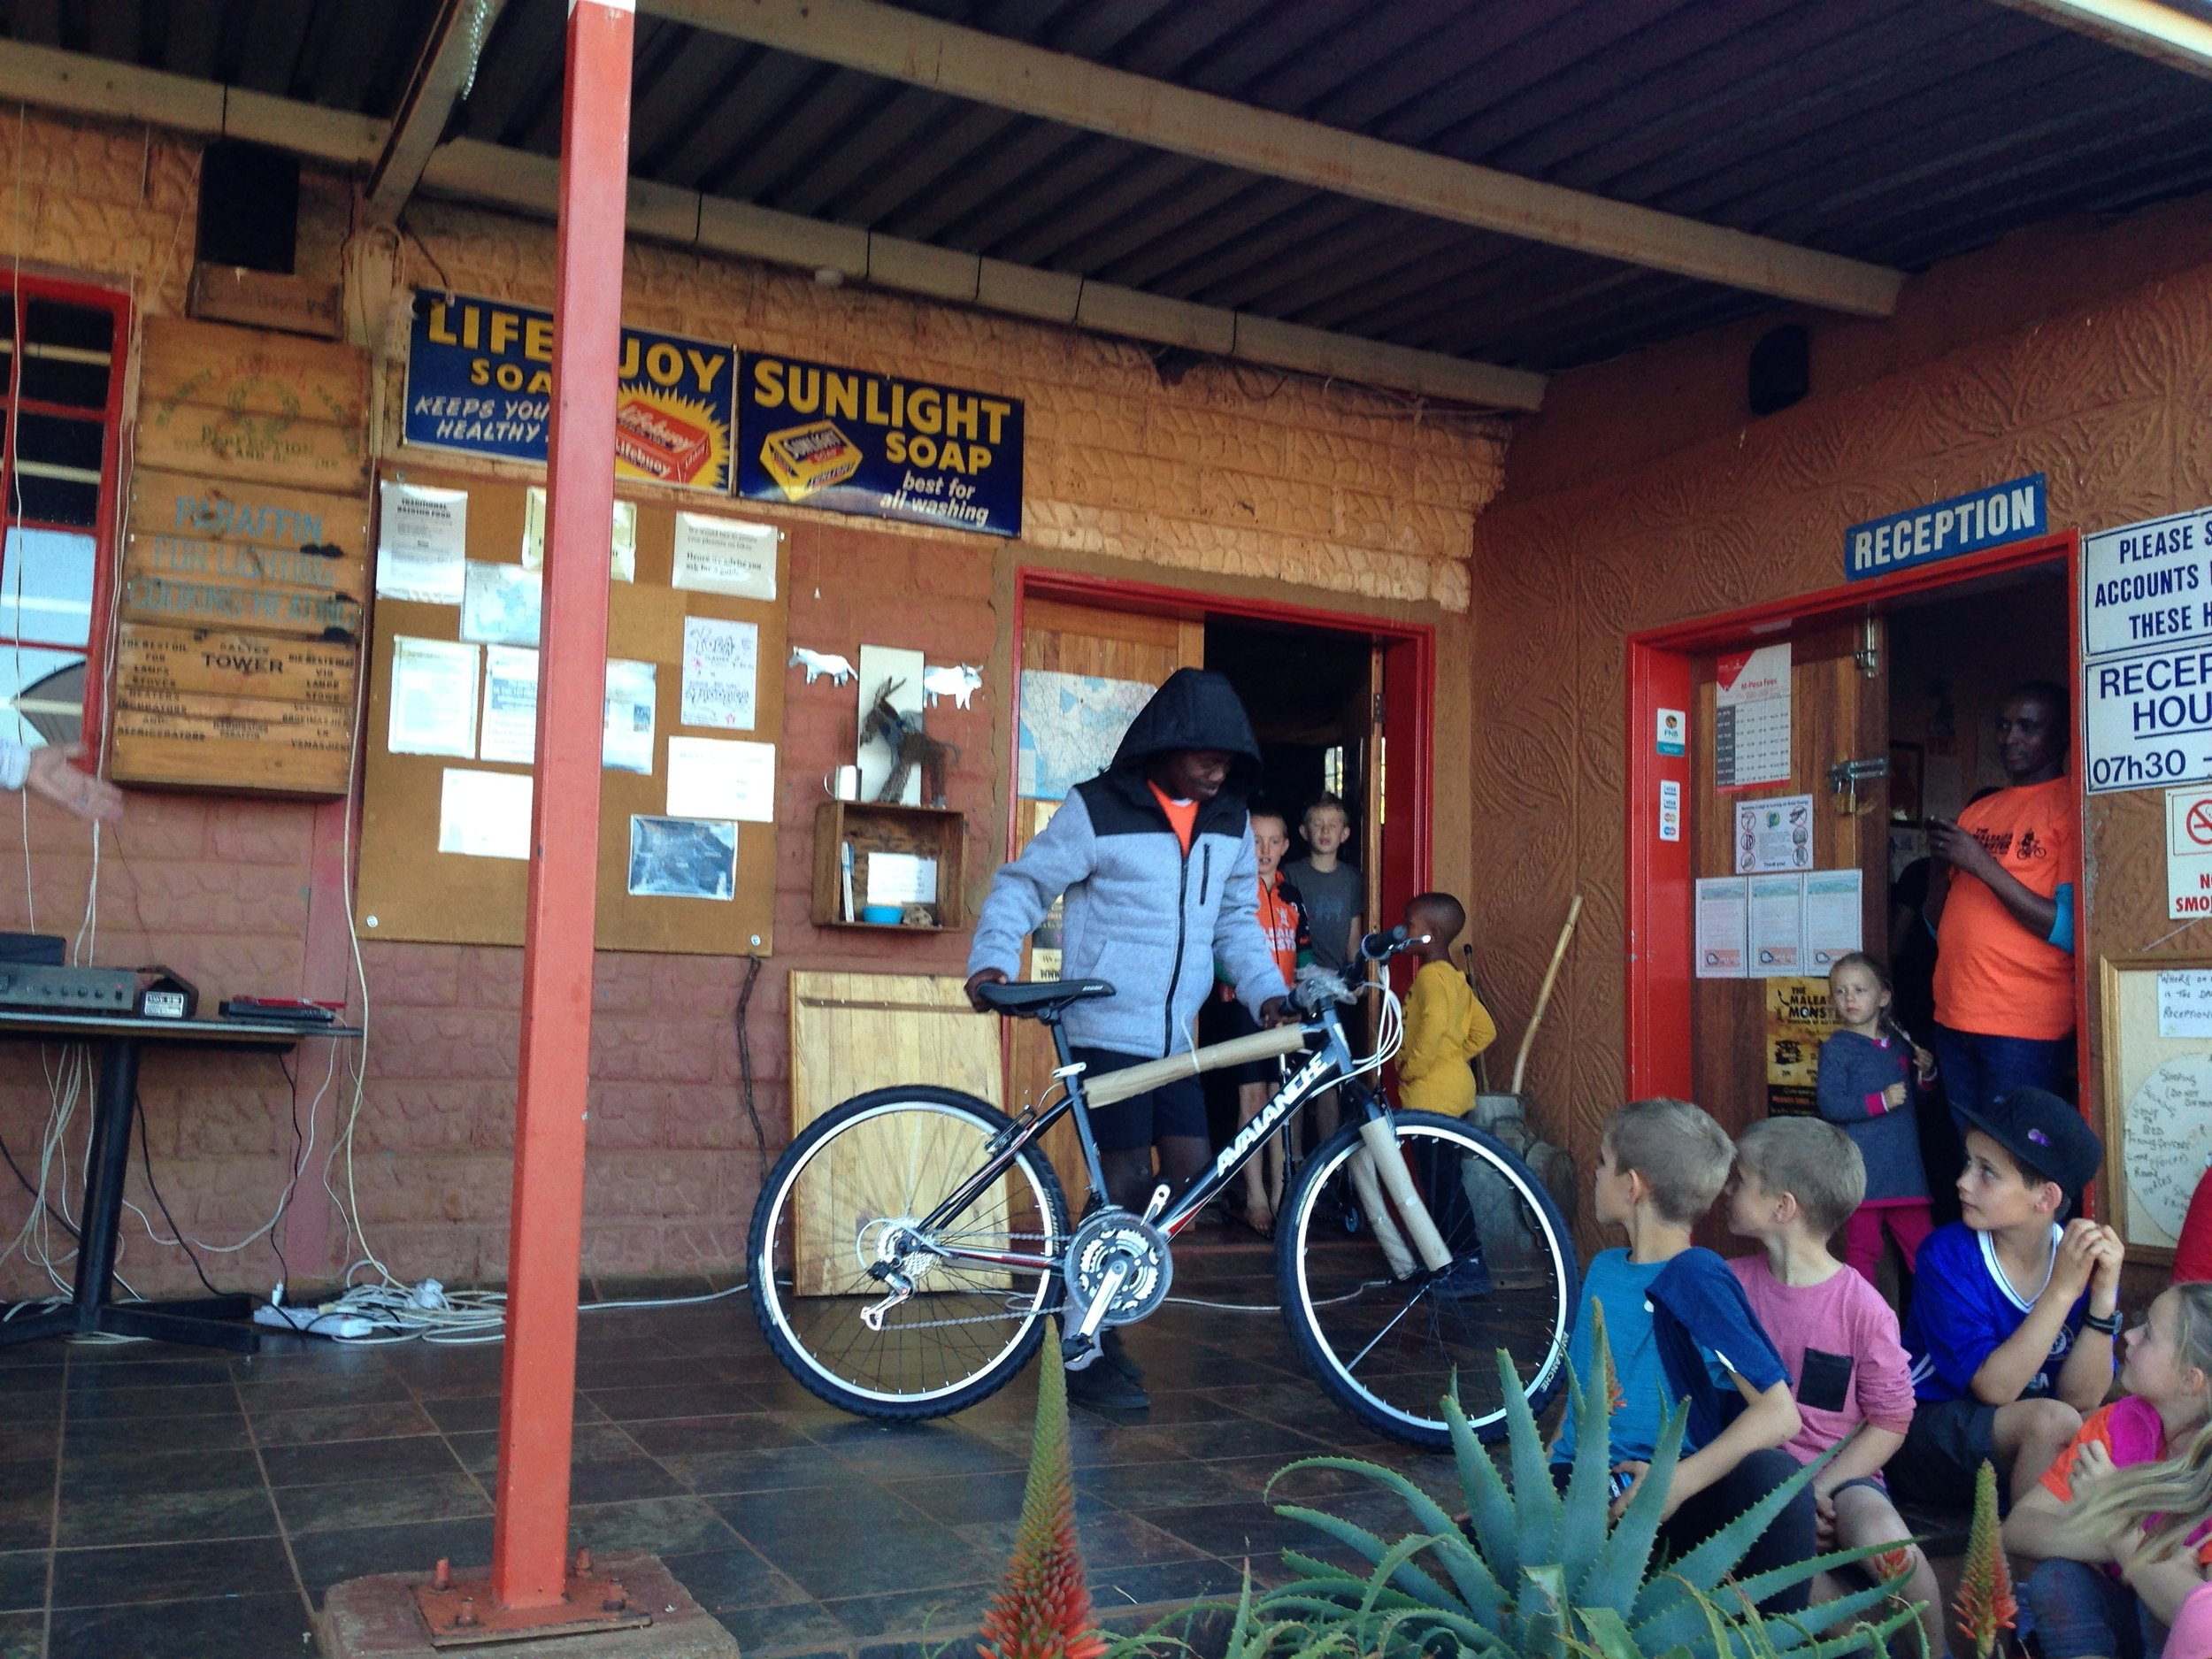 Prize Winner - A Sepheo student receives the prize of a new bike for his outstanding  28km race